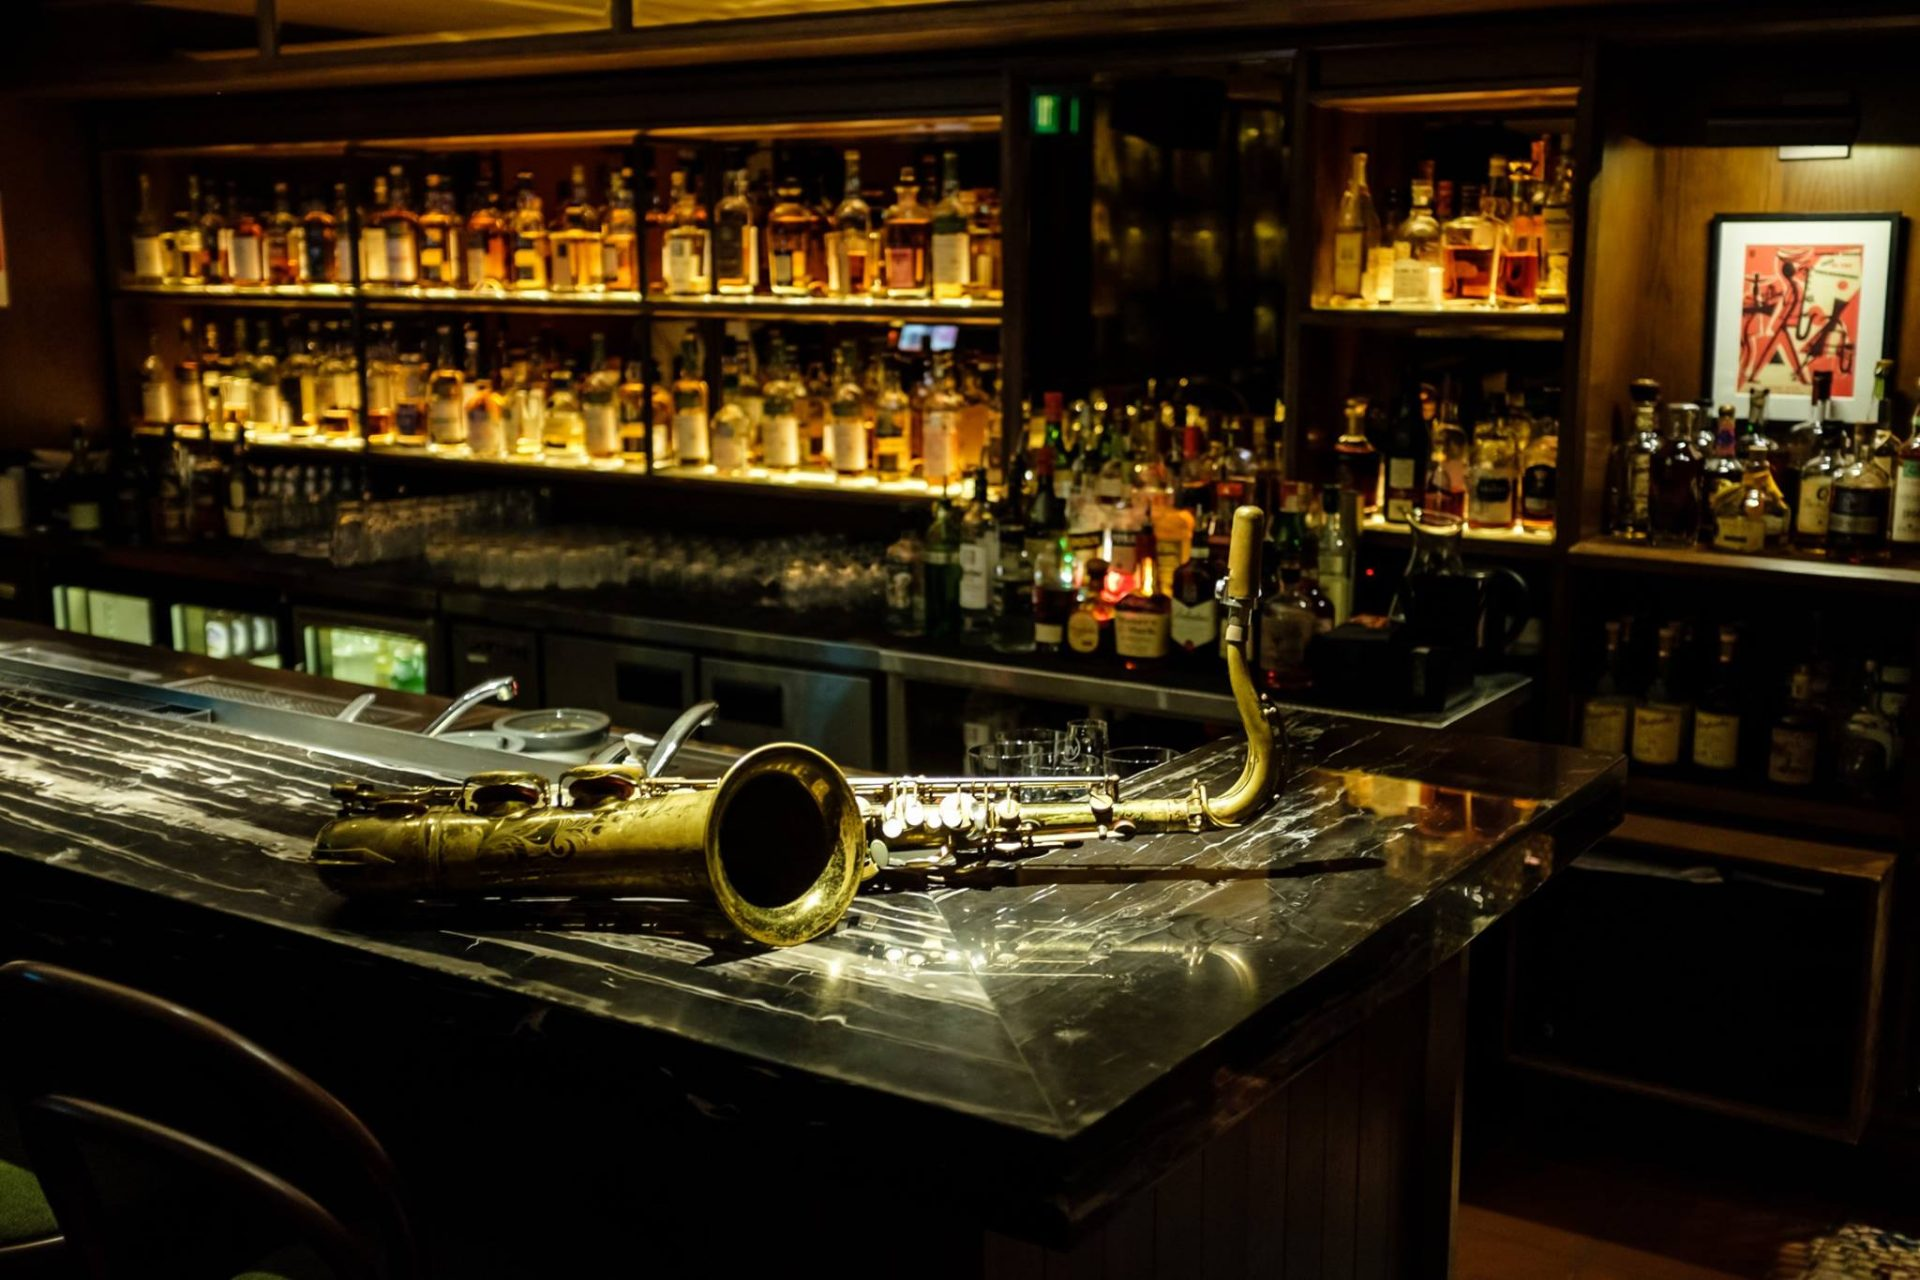 All that jazz: 5 best jazz bars in Singapore to check out